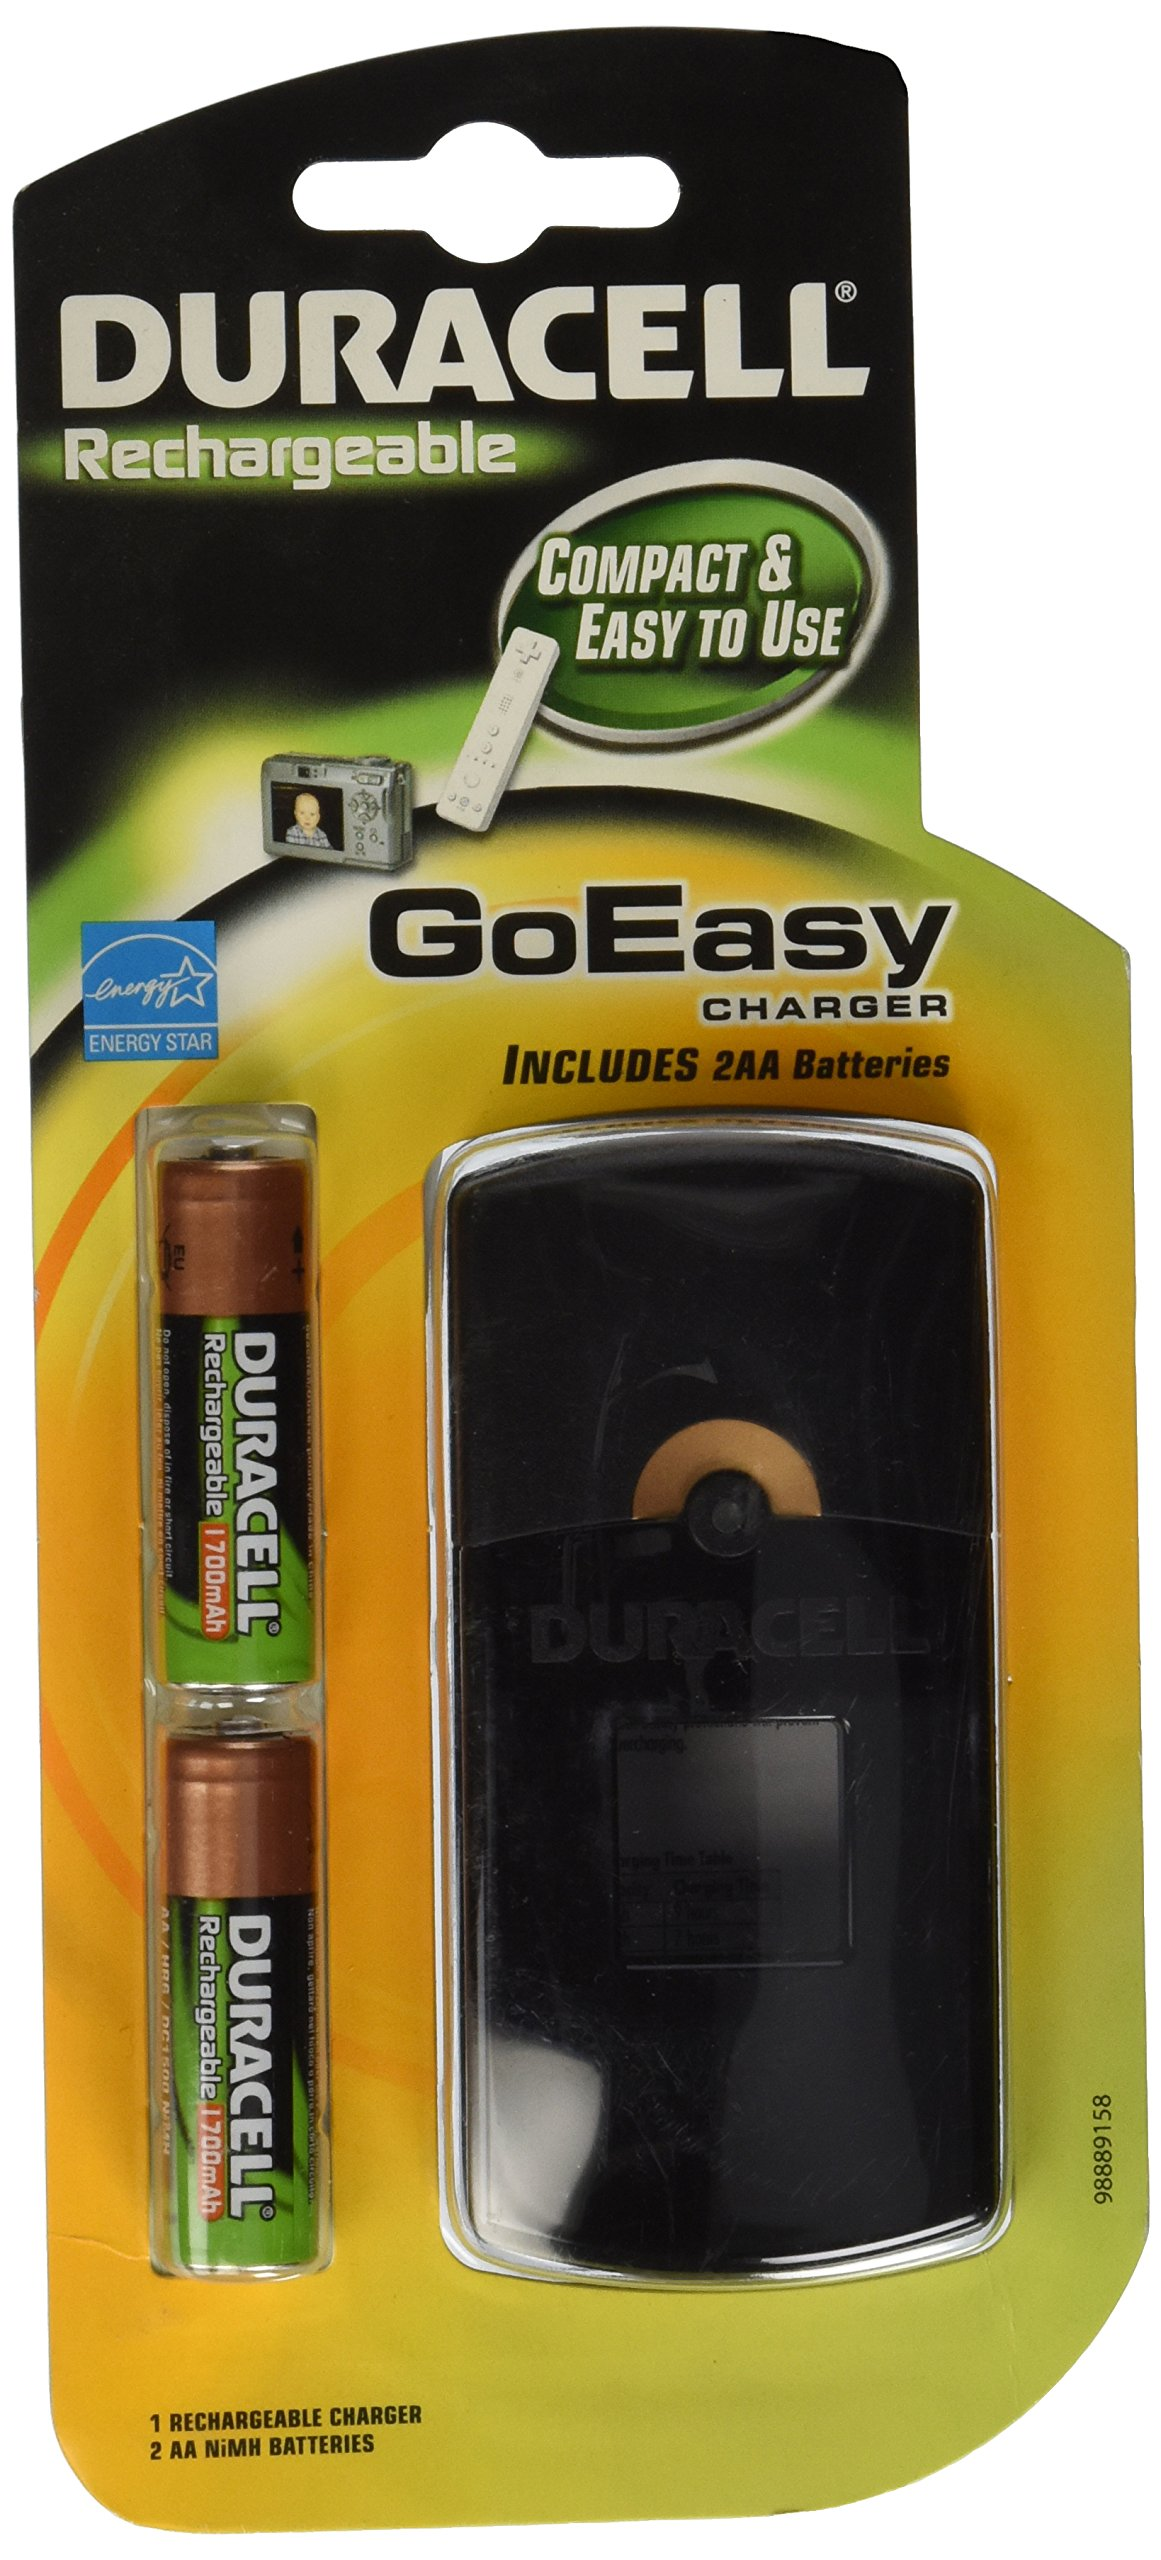 Duracell GoEasy Charger / Rechargable / includes 2 AA rechargeable batteries,